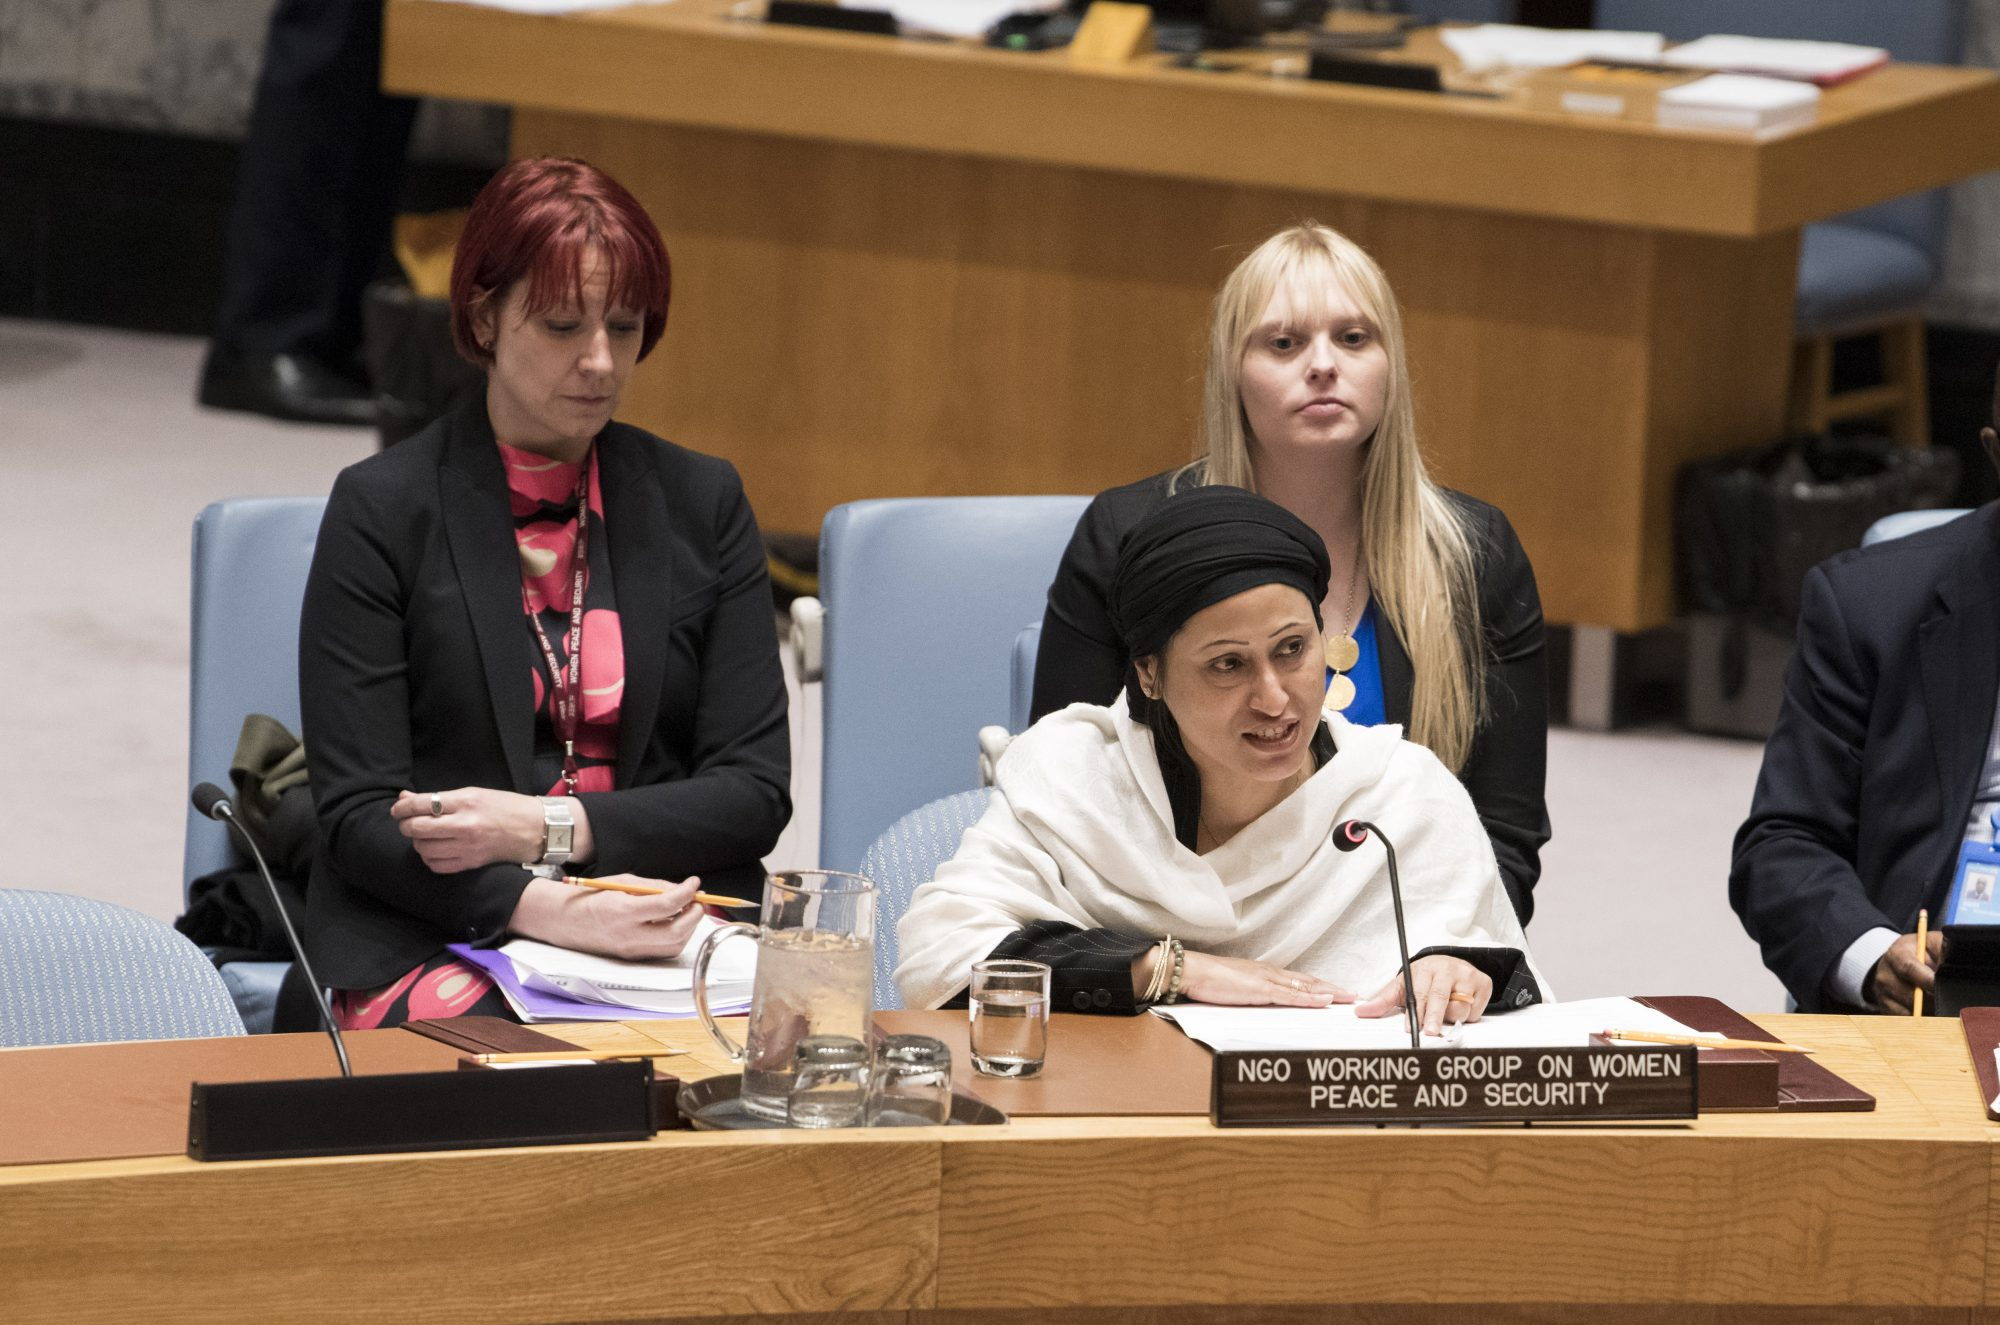 Statement by Ms. Razia Sultana at UN Security Council Open Debate on Sexual Violence in Conflict